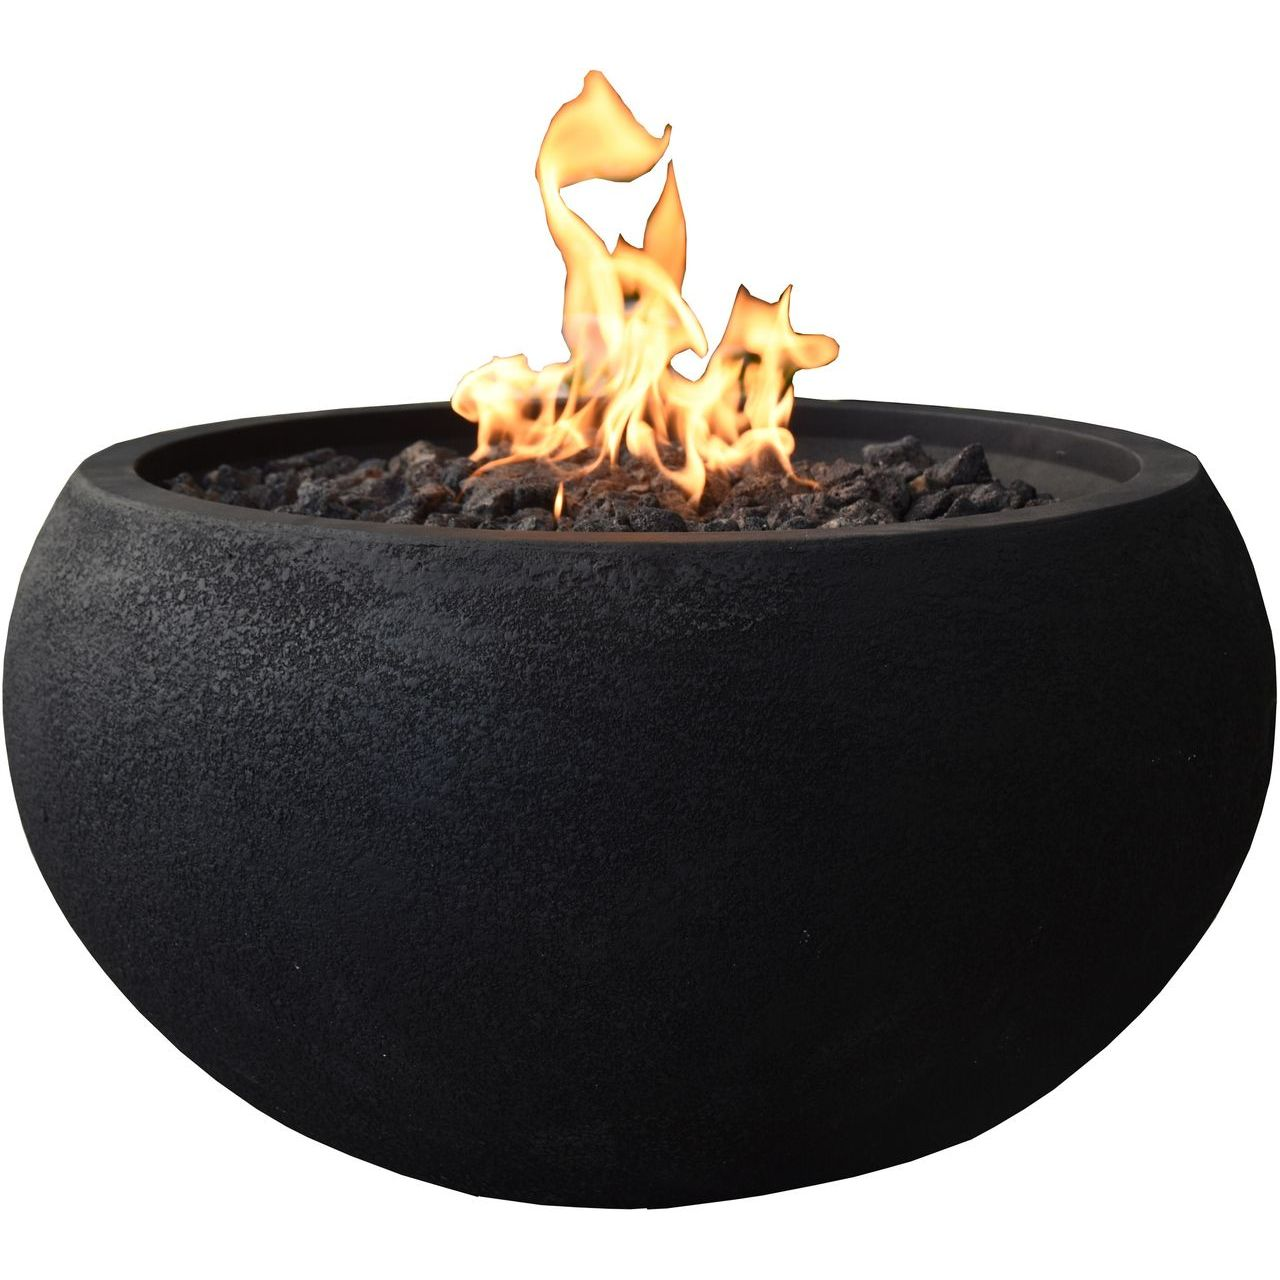 Modeno OFG115-NG York Fire Bowl  - Natural Gas